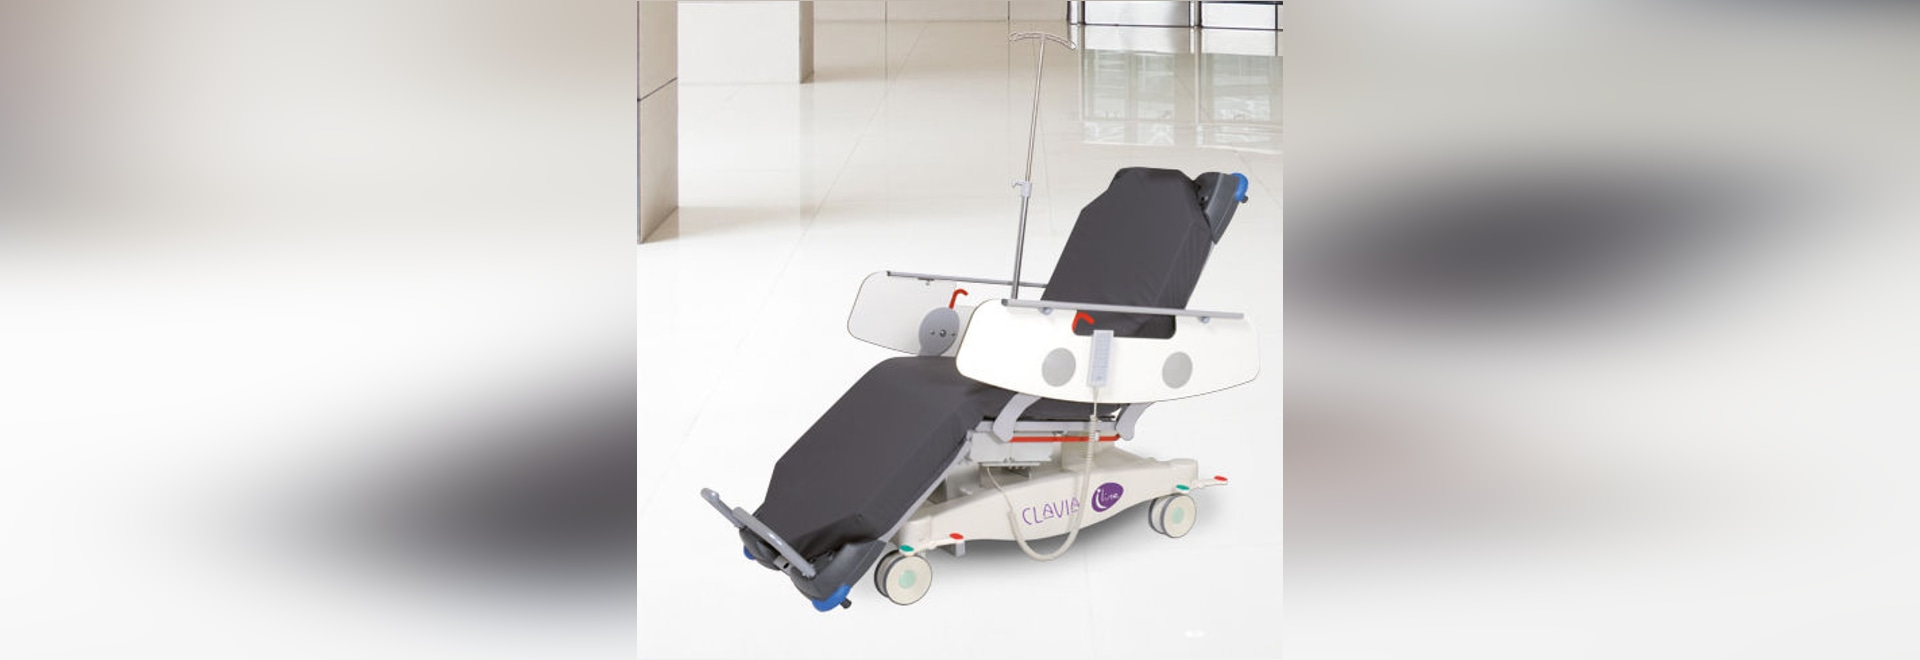 NEW: electrical transfer chair by BMB MEDICAL